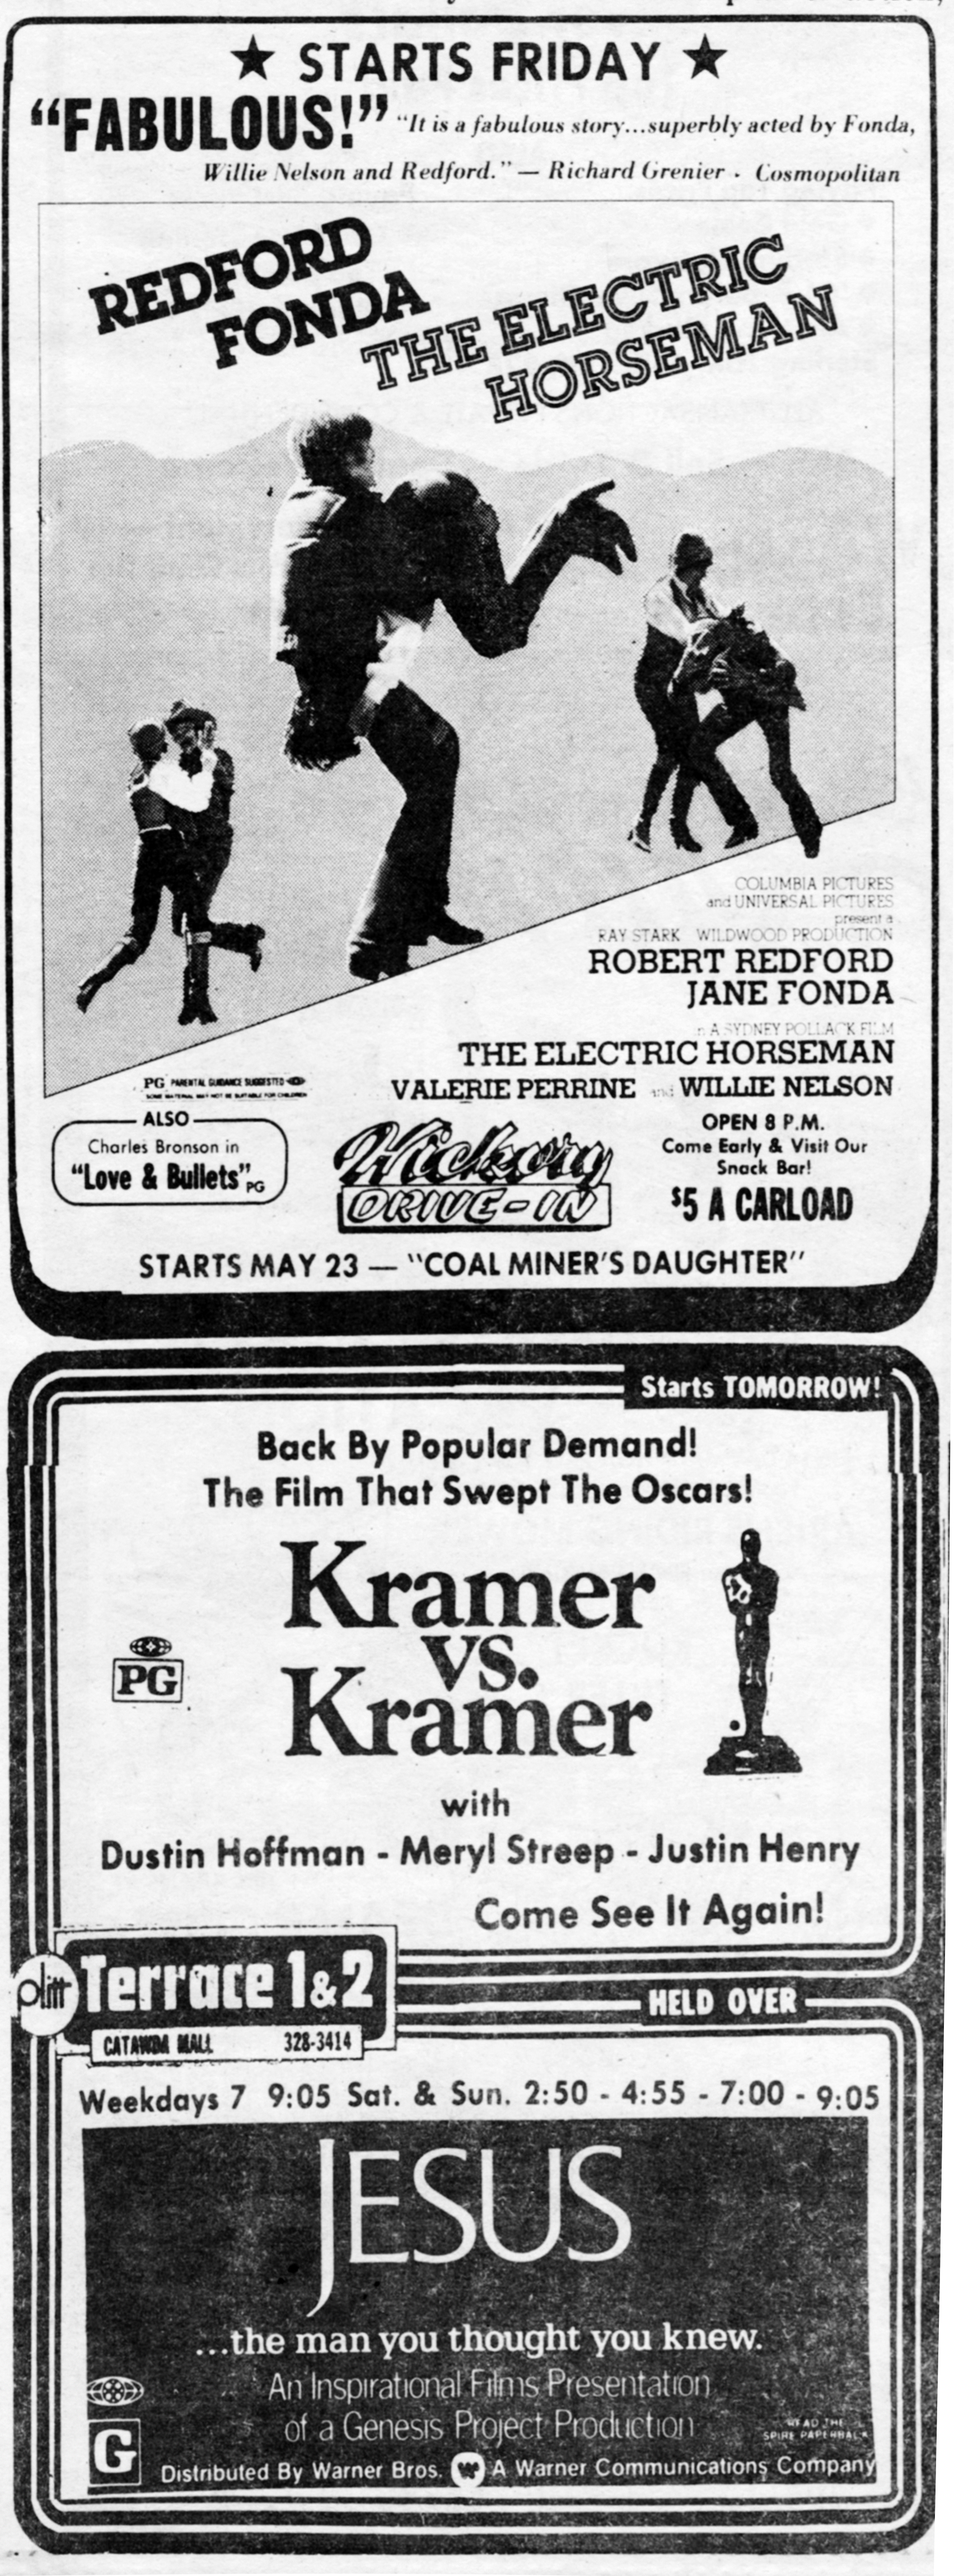 Movie Advertisements published May 8, 1980.